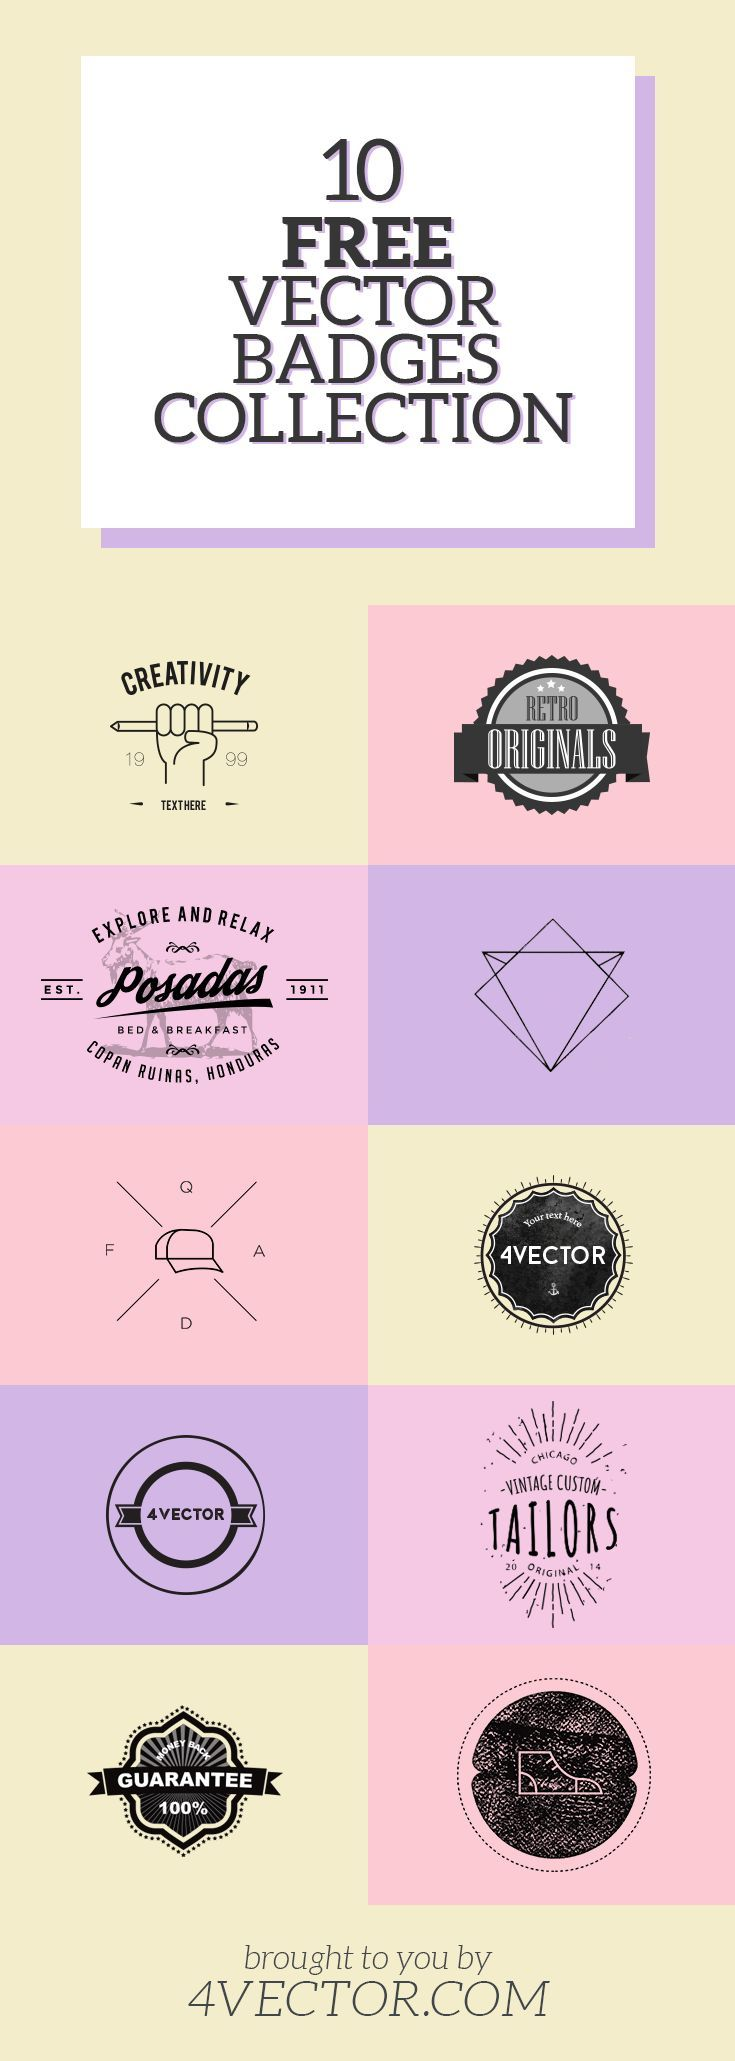 Looking for free vector badges? You're in luck! We have compiled a list of hand-picked awesome vectors that you can use in your designs... for FREE! Check out more free vector graphics at 4vector.com